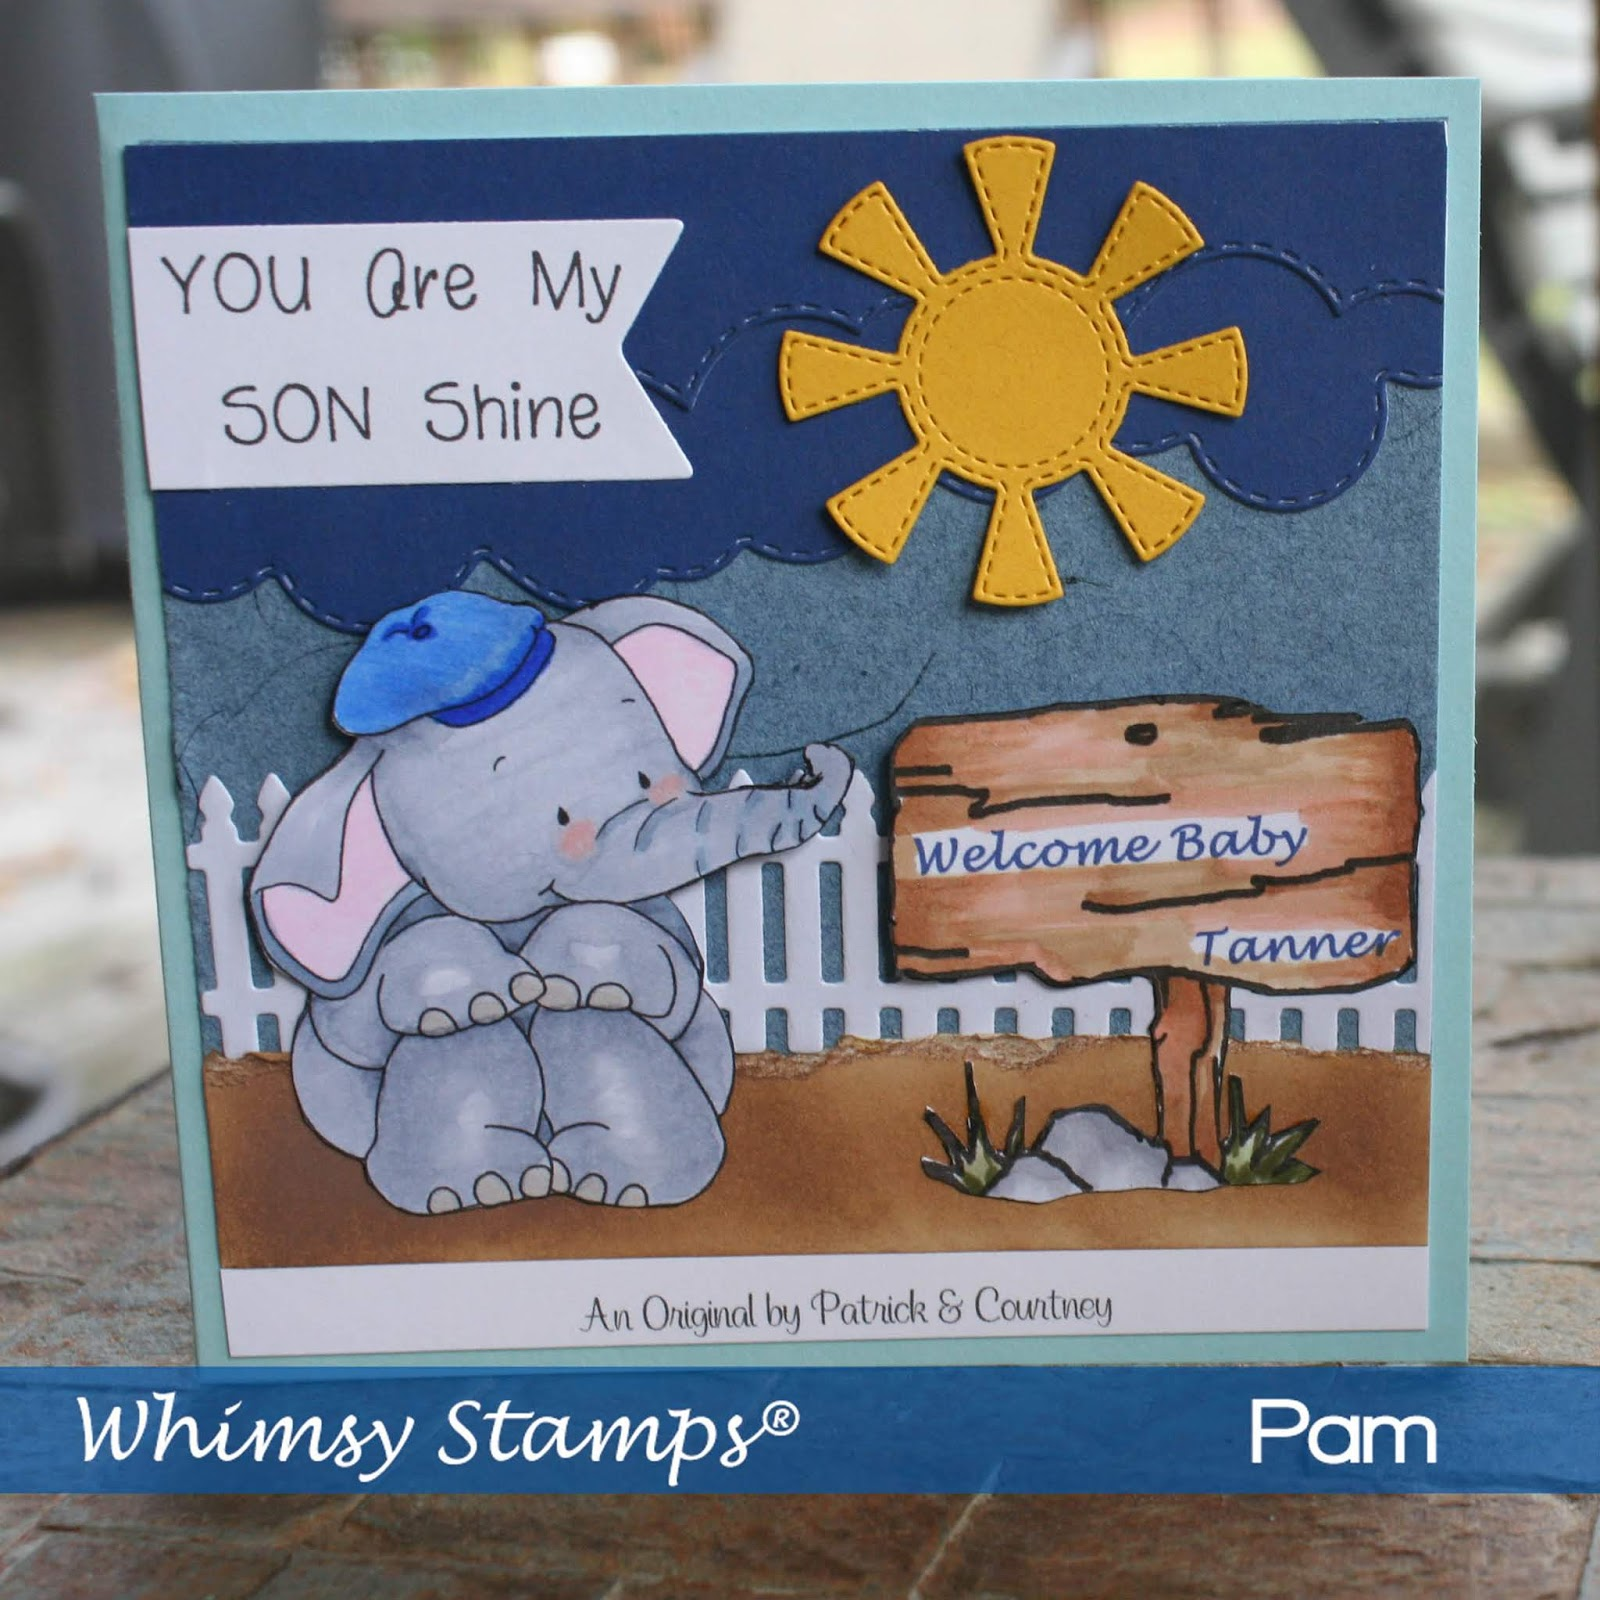 Pam's Pearls: You Are My SON Shine